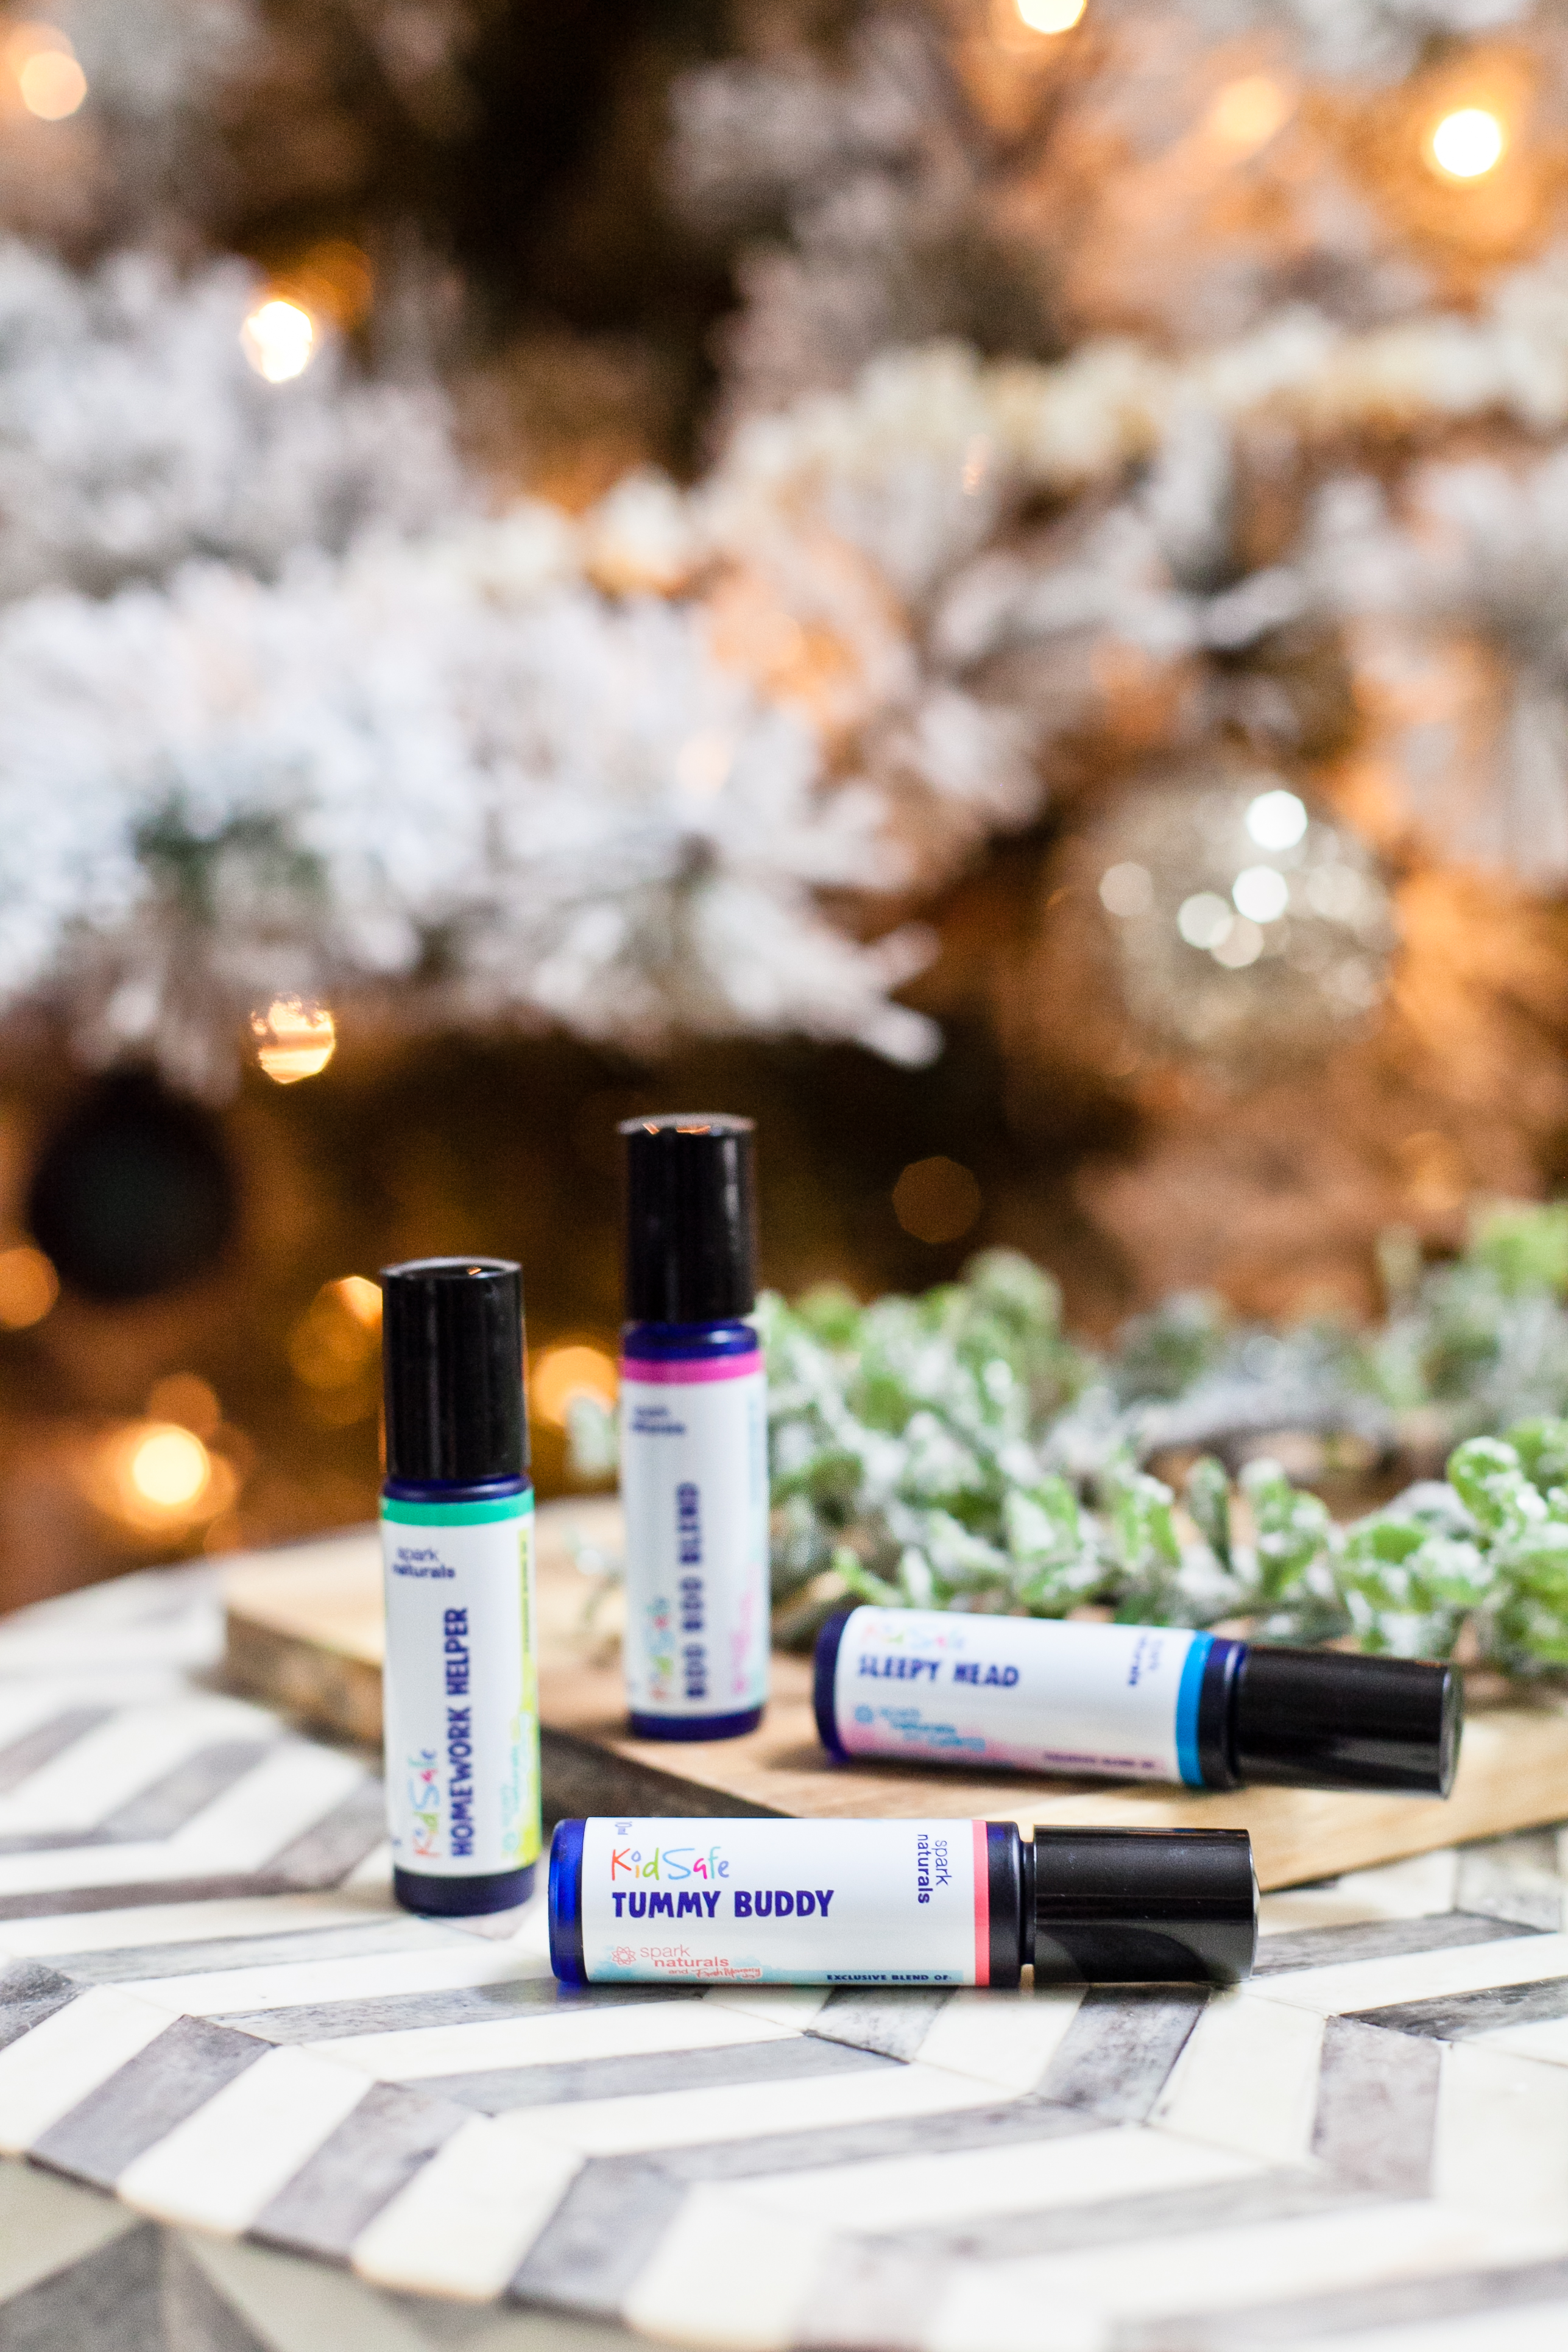 KID SAFE, ready to use and apply essential oil blends for kids. Build up your natural medicine cabinet with these four blends from popular Florida lifestyle blogger Tabitha Blue of Fresh Mommy Blog and Spark Naturals pure essential oils!